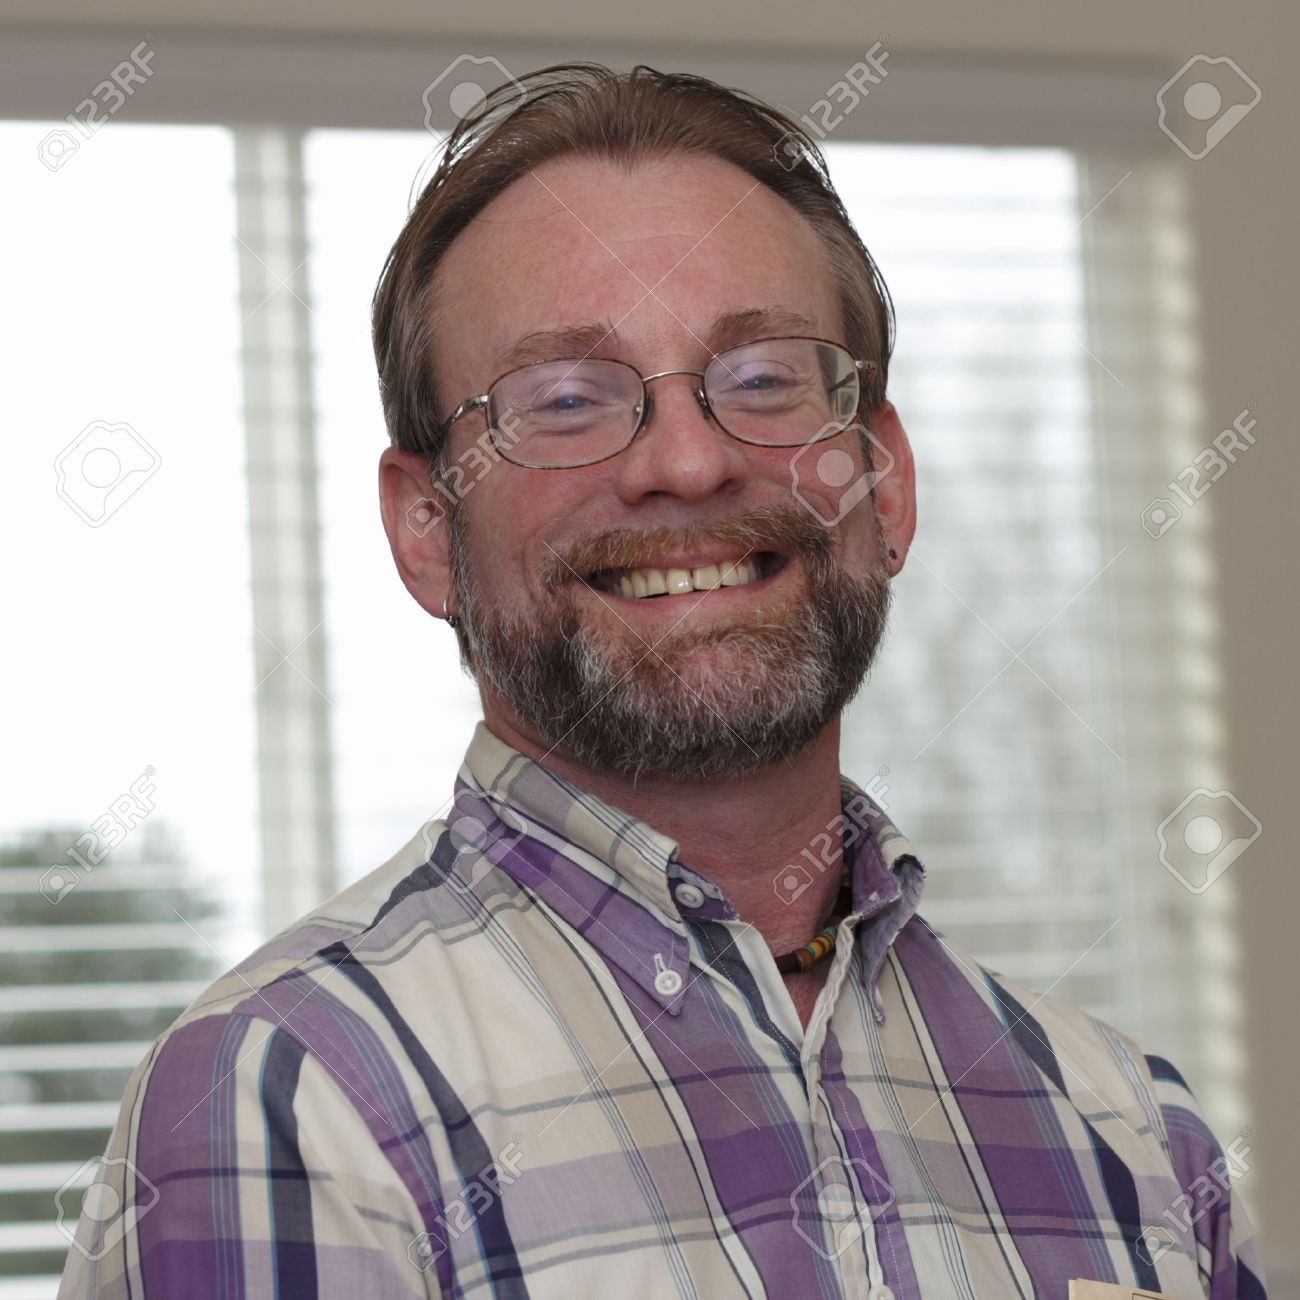 Male wearing eyeglasses in is forties with blonde gray hair and beard smiling in a joyous way showing his upper teeth Stock Photo - 14057263